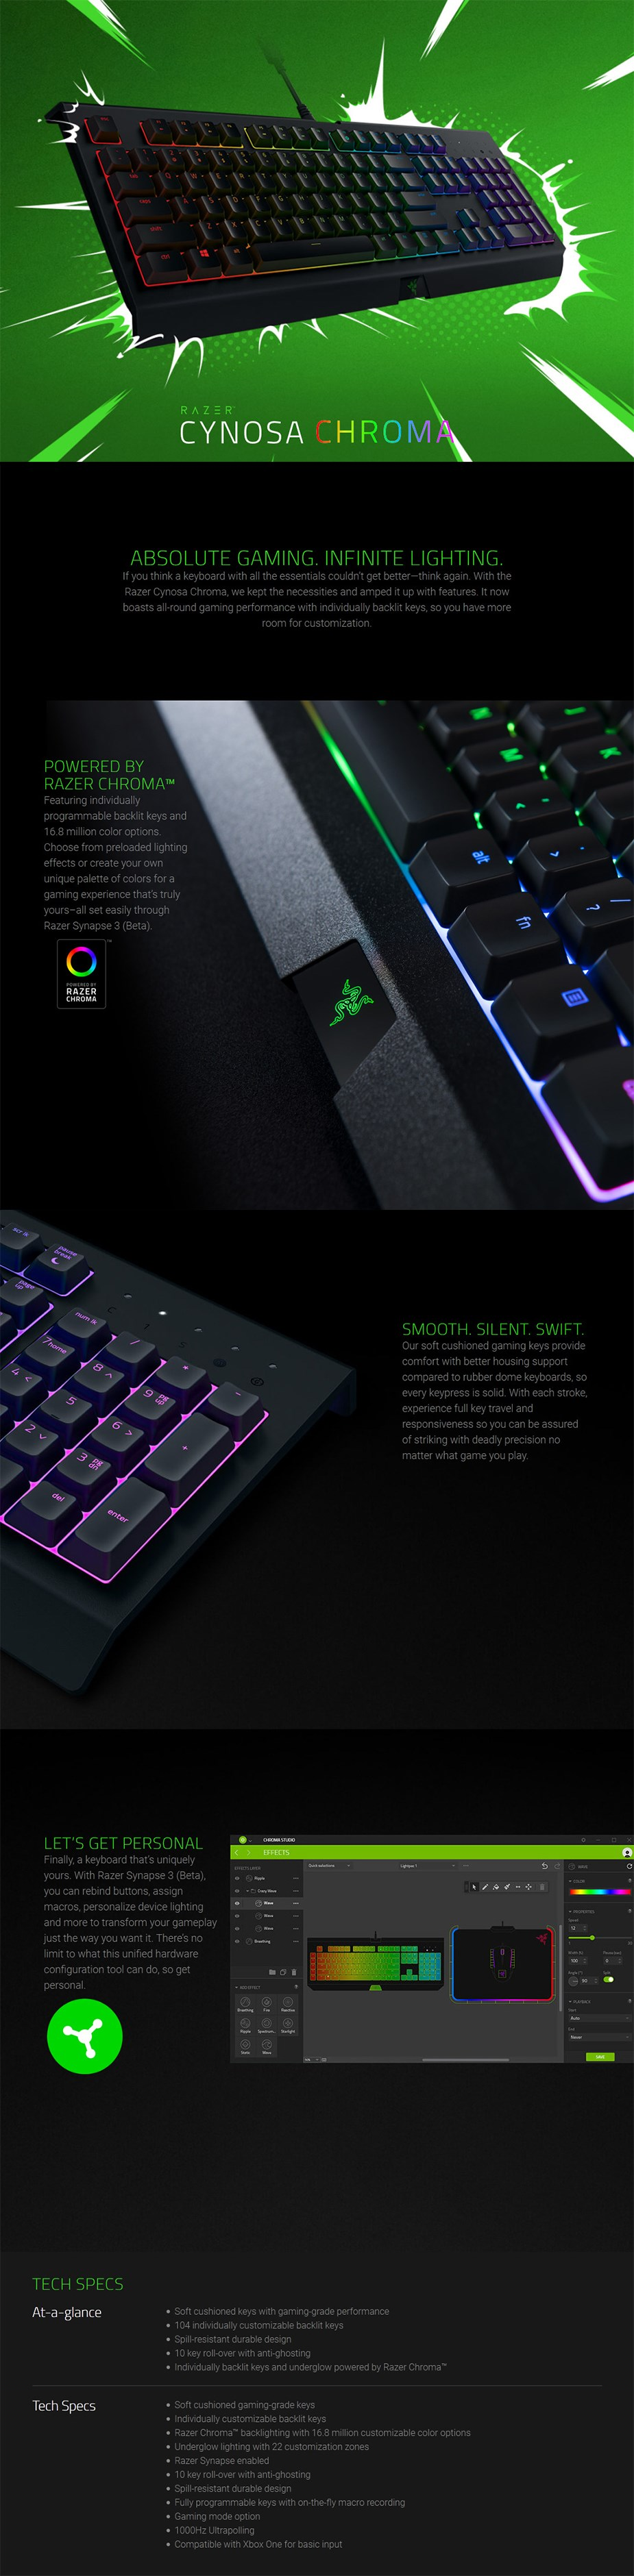 Razer Cynosa Chroma Gaming Keyboard - Overview 1